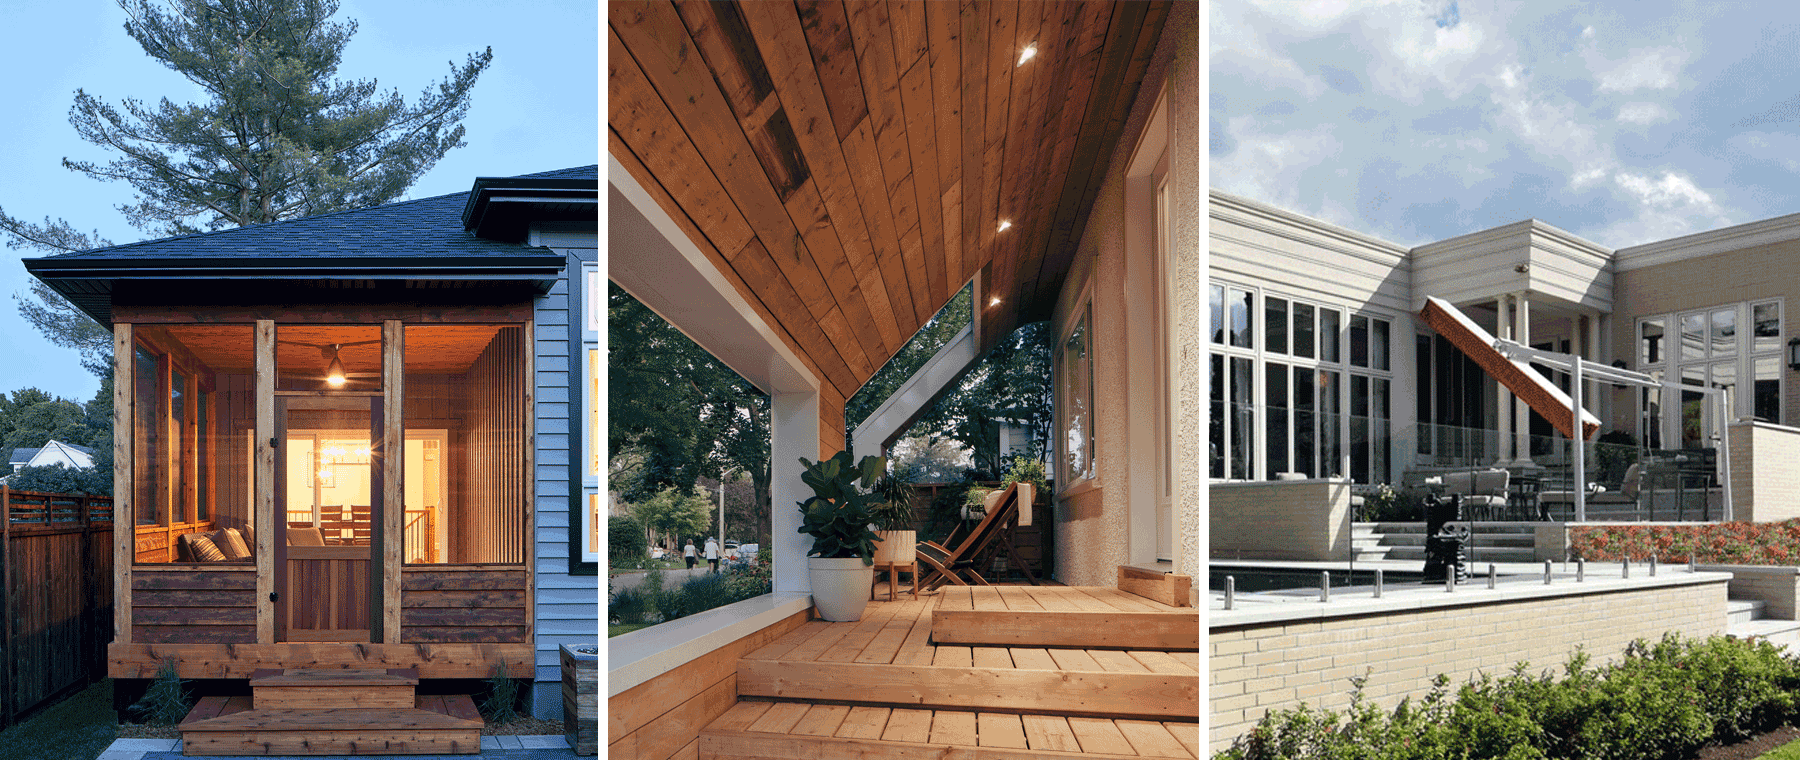 Porches We Love: A screened-in porch, a grand poolhouse, and more awesome exterior spaces